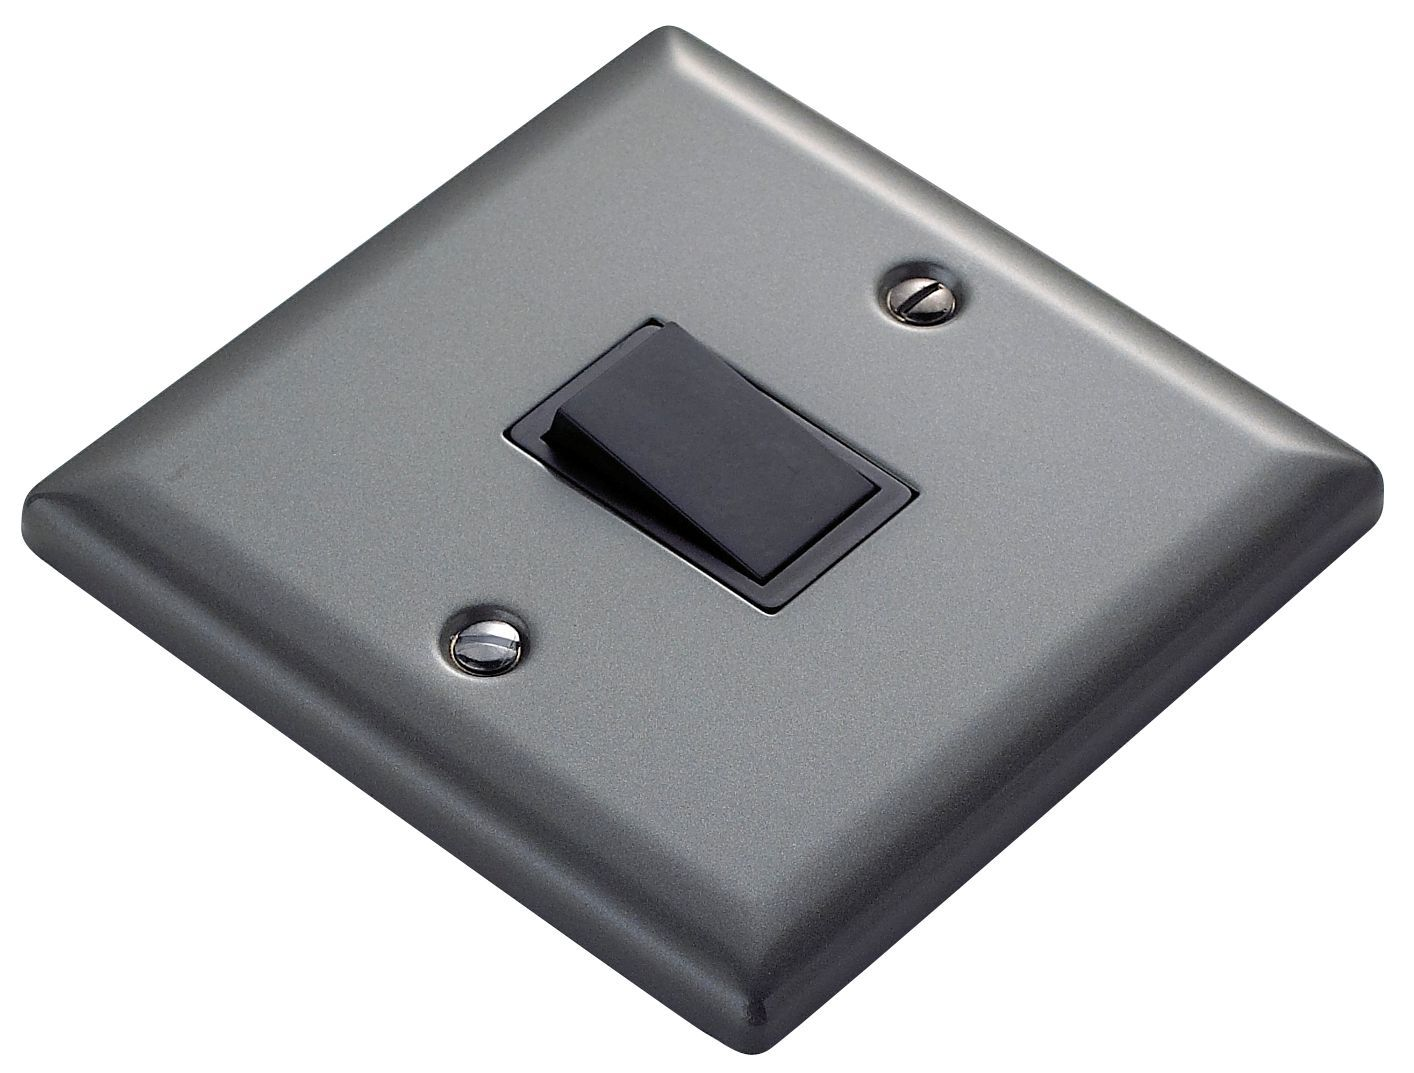 Volex 10A 1-Way Single Pewter Effect Light Switch | B&q ... on light switch blue, light switch terminals, light dimmer switch, light switch insulation, light switch connections, light switch repair, light switch operation, light switch paint, light switch socket, light switches, light switch breakers, light switch grounding, light switch three, light switch painting, light switch parts, light switch interior, light bulb, light switch installation, light switch lamps, light switch electrical,